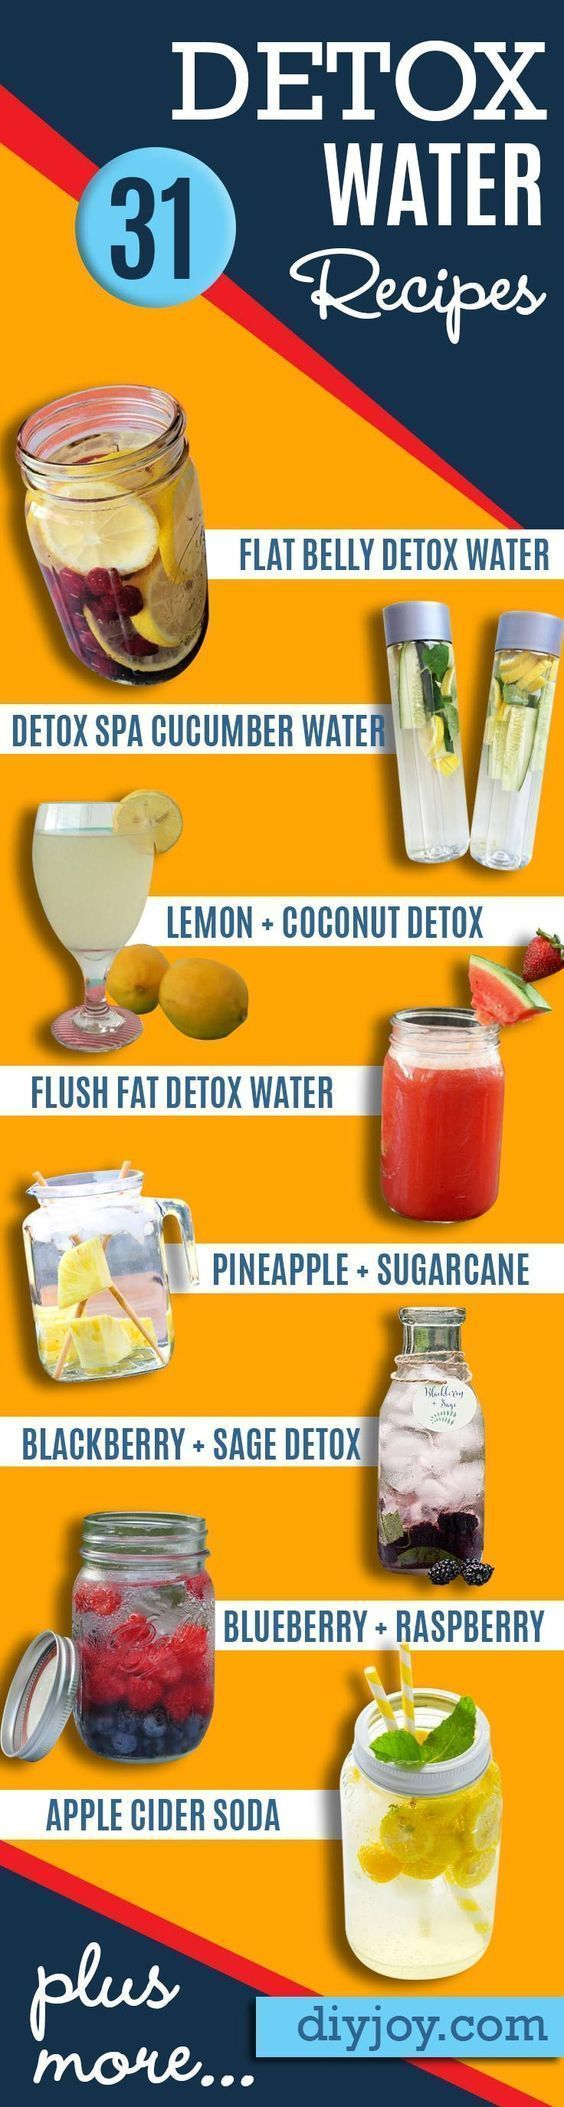 how to start a detox